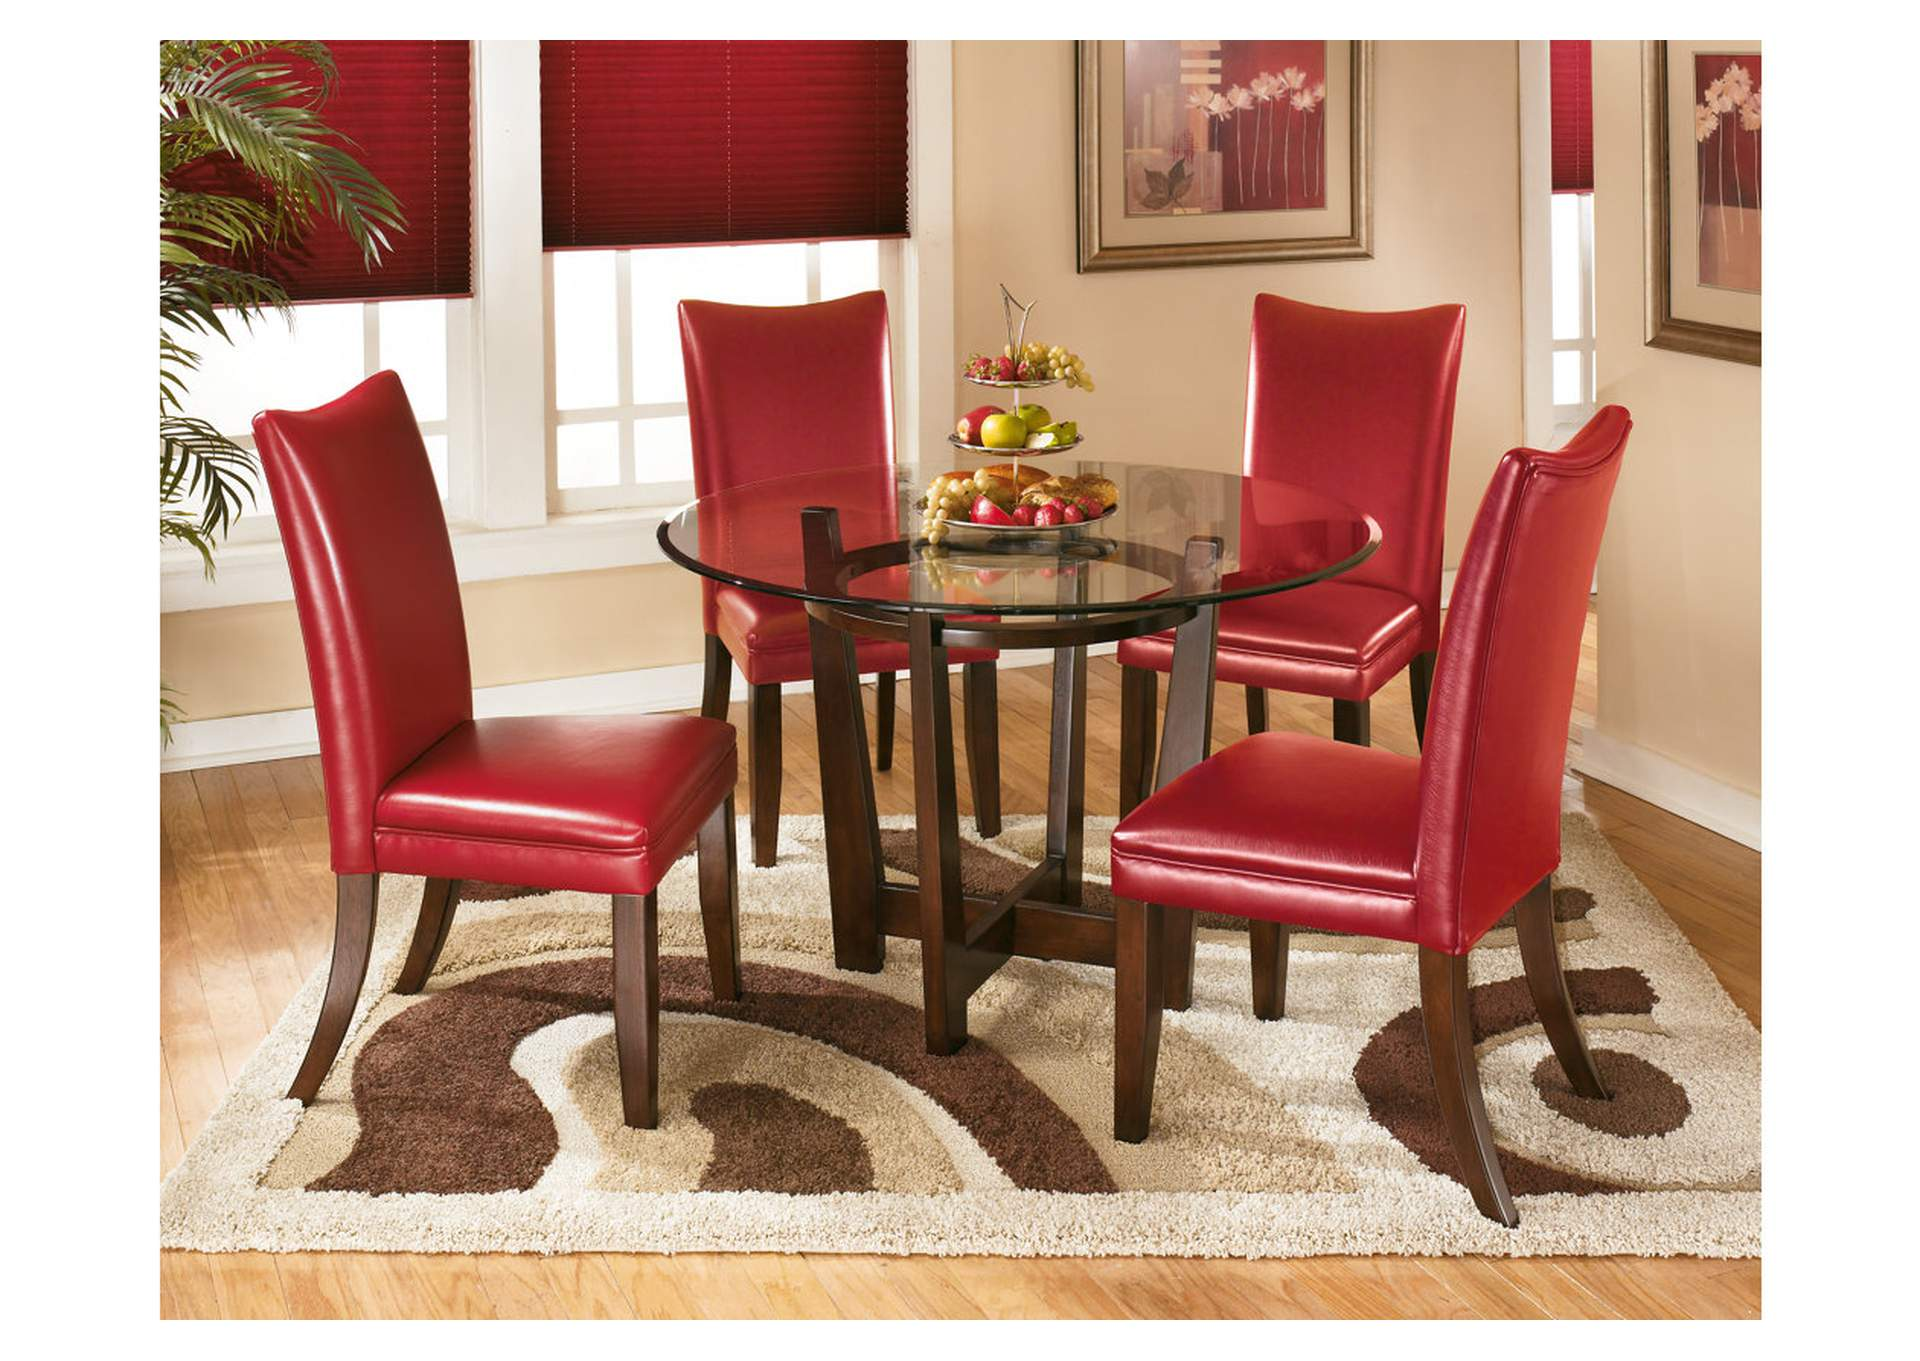 roses flooring and furniture charell round dining table w 4 red side chairs. Black Bedroom Furniture Sets. Home Design Ideas